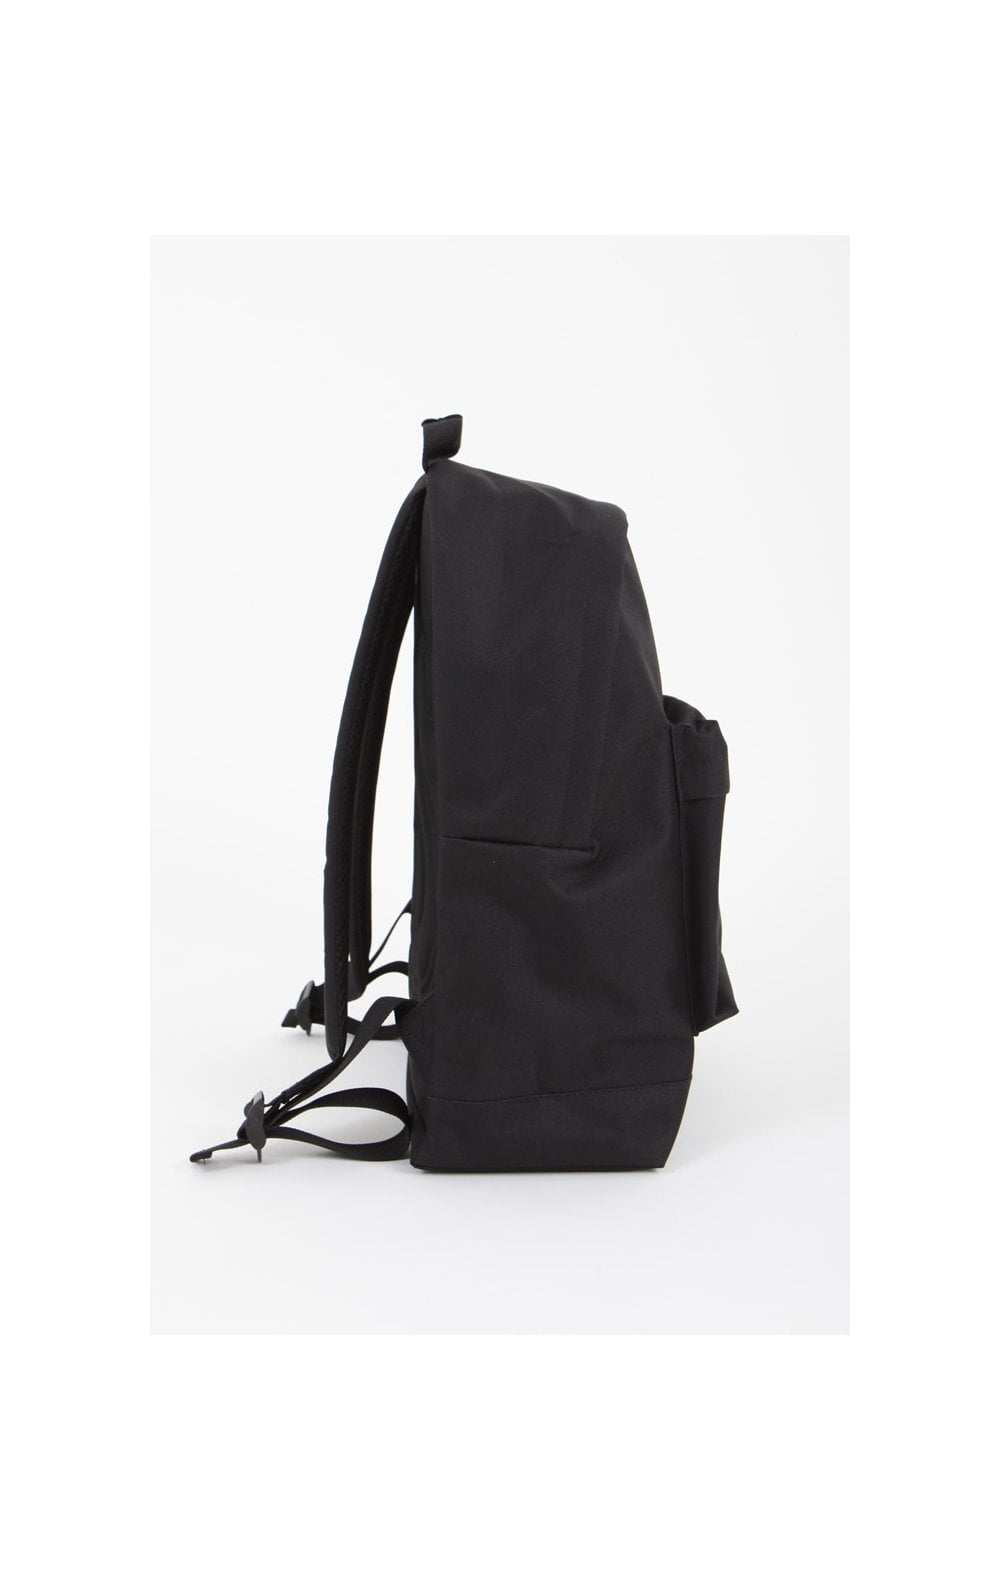 SikSilk Backpack- Black (1)